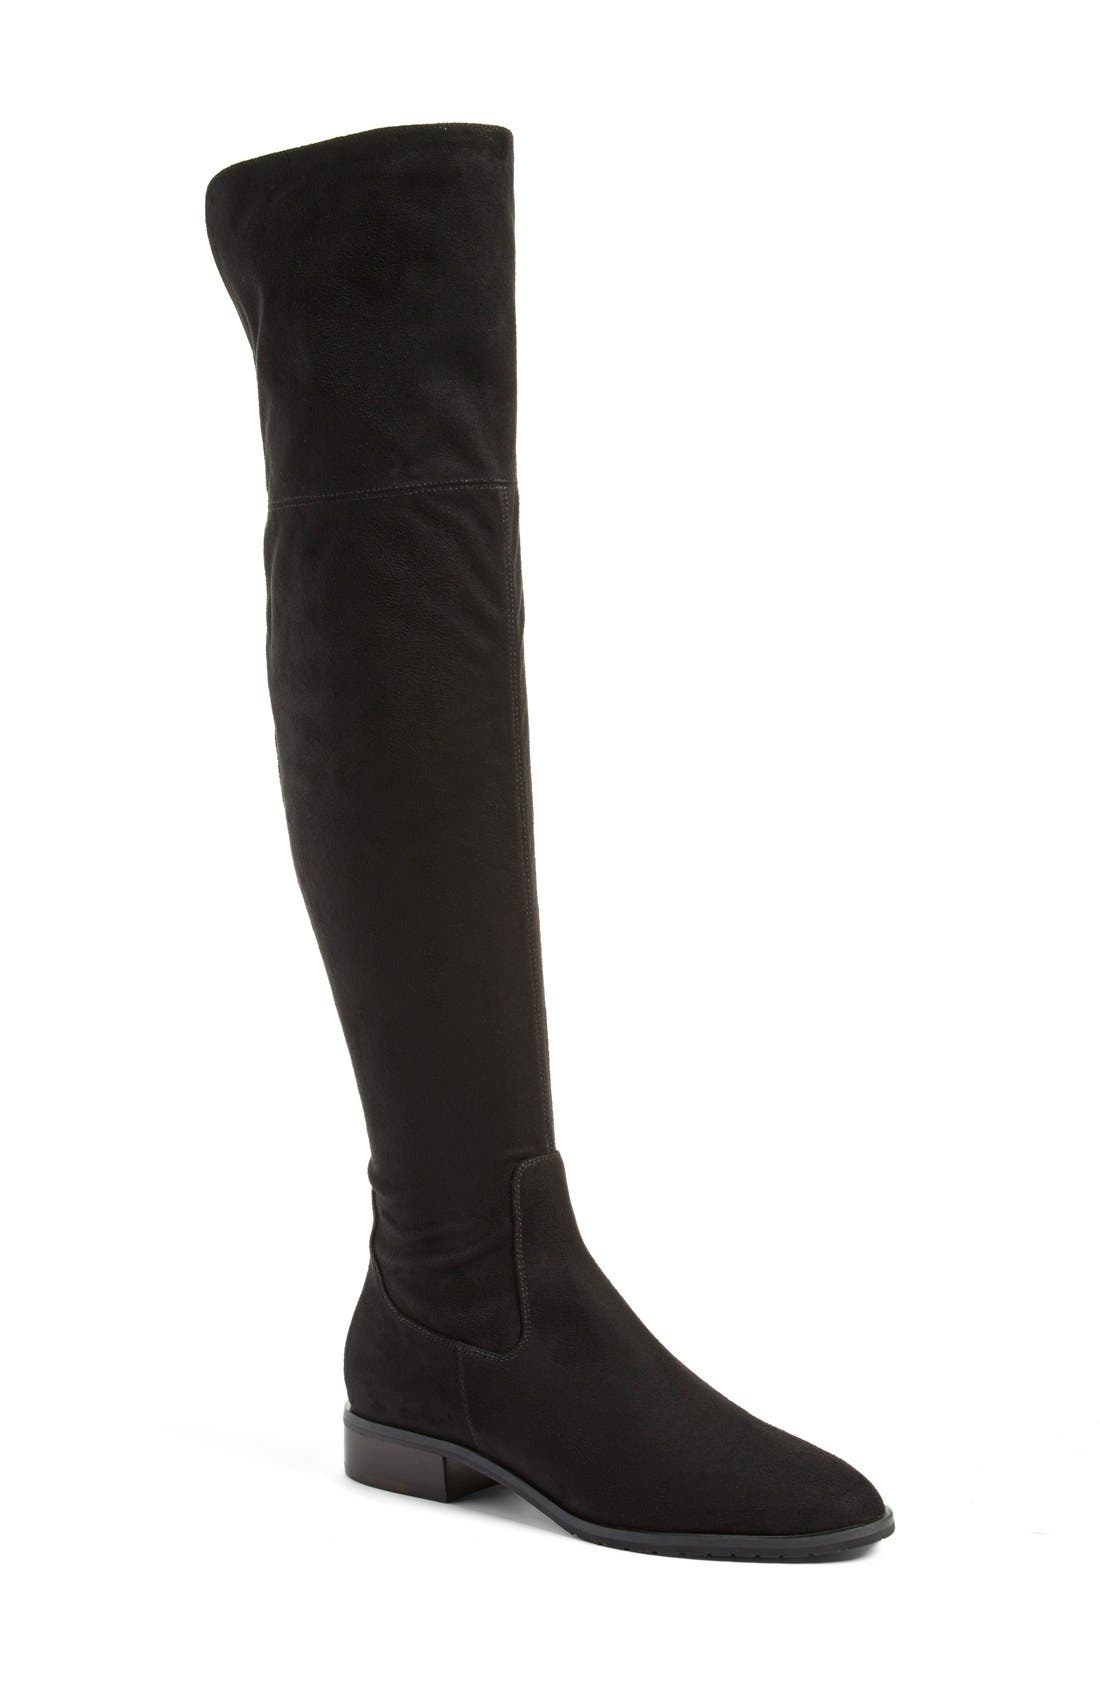 'Luci' Over the Knee Boot,                             Main thumbnail 1, color,                             001